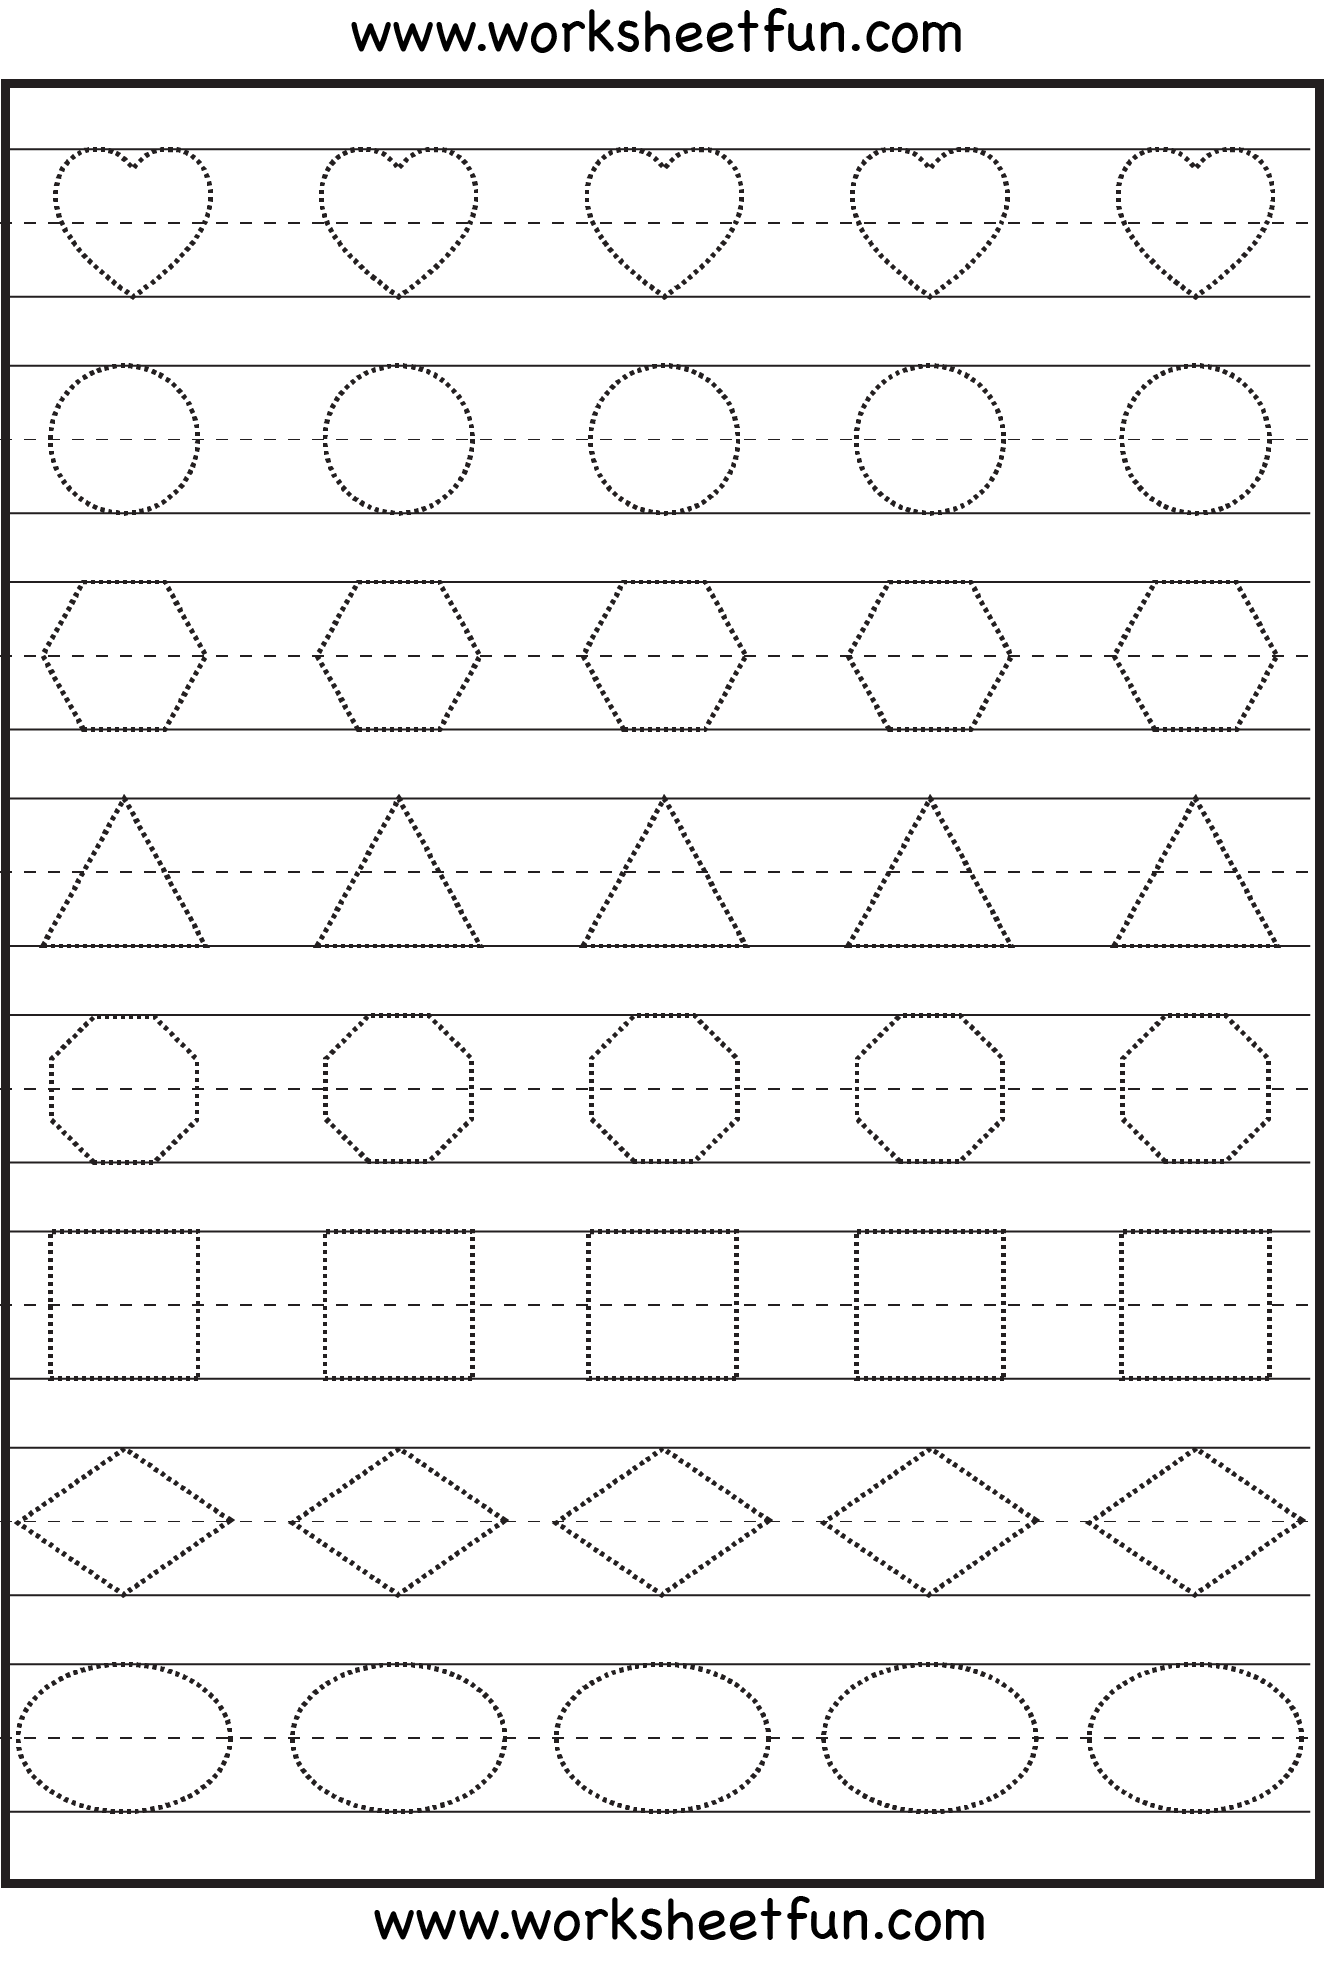 Worksheets Worksheets For Preschoolers Free prewriting worksheets for preschoolers free intrepidpath printable preschool shapes 5 best images of toddler activity writing pre